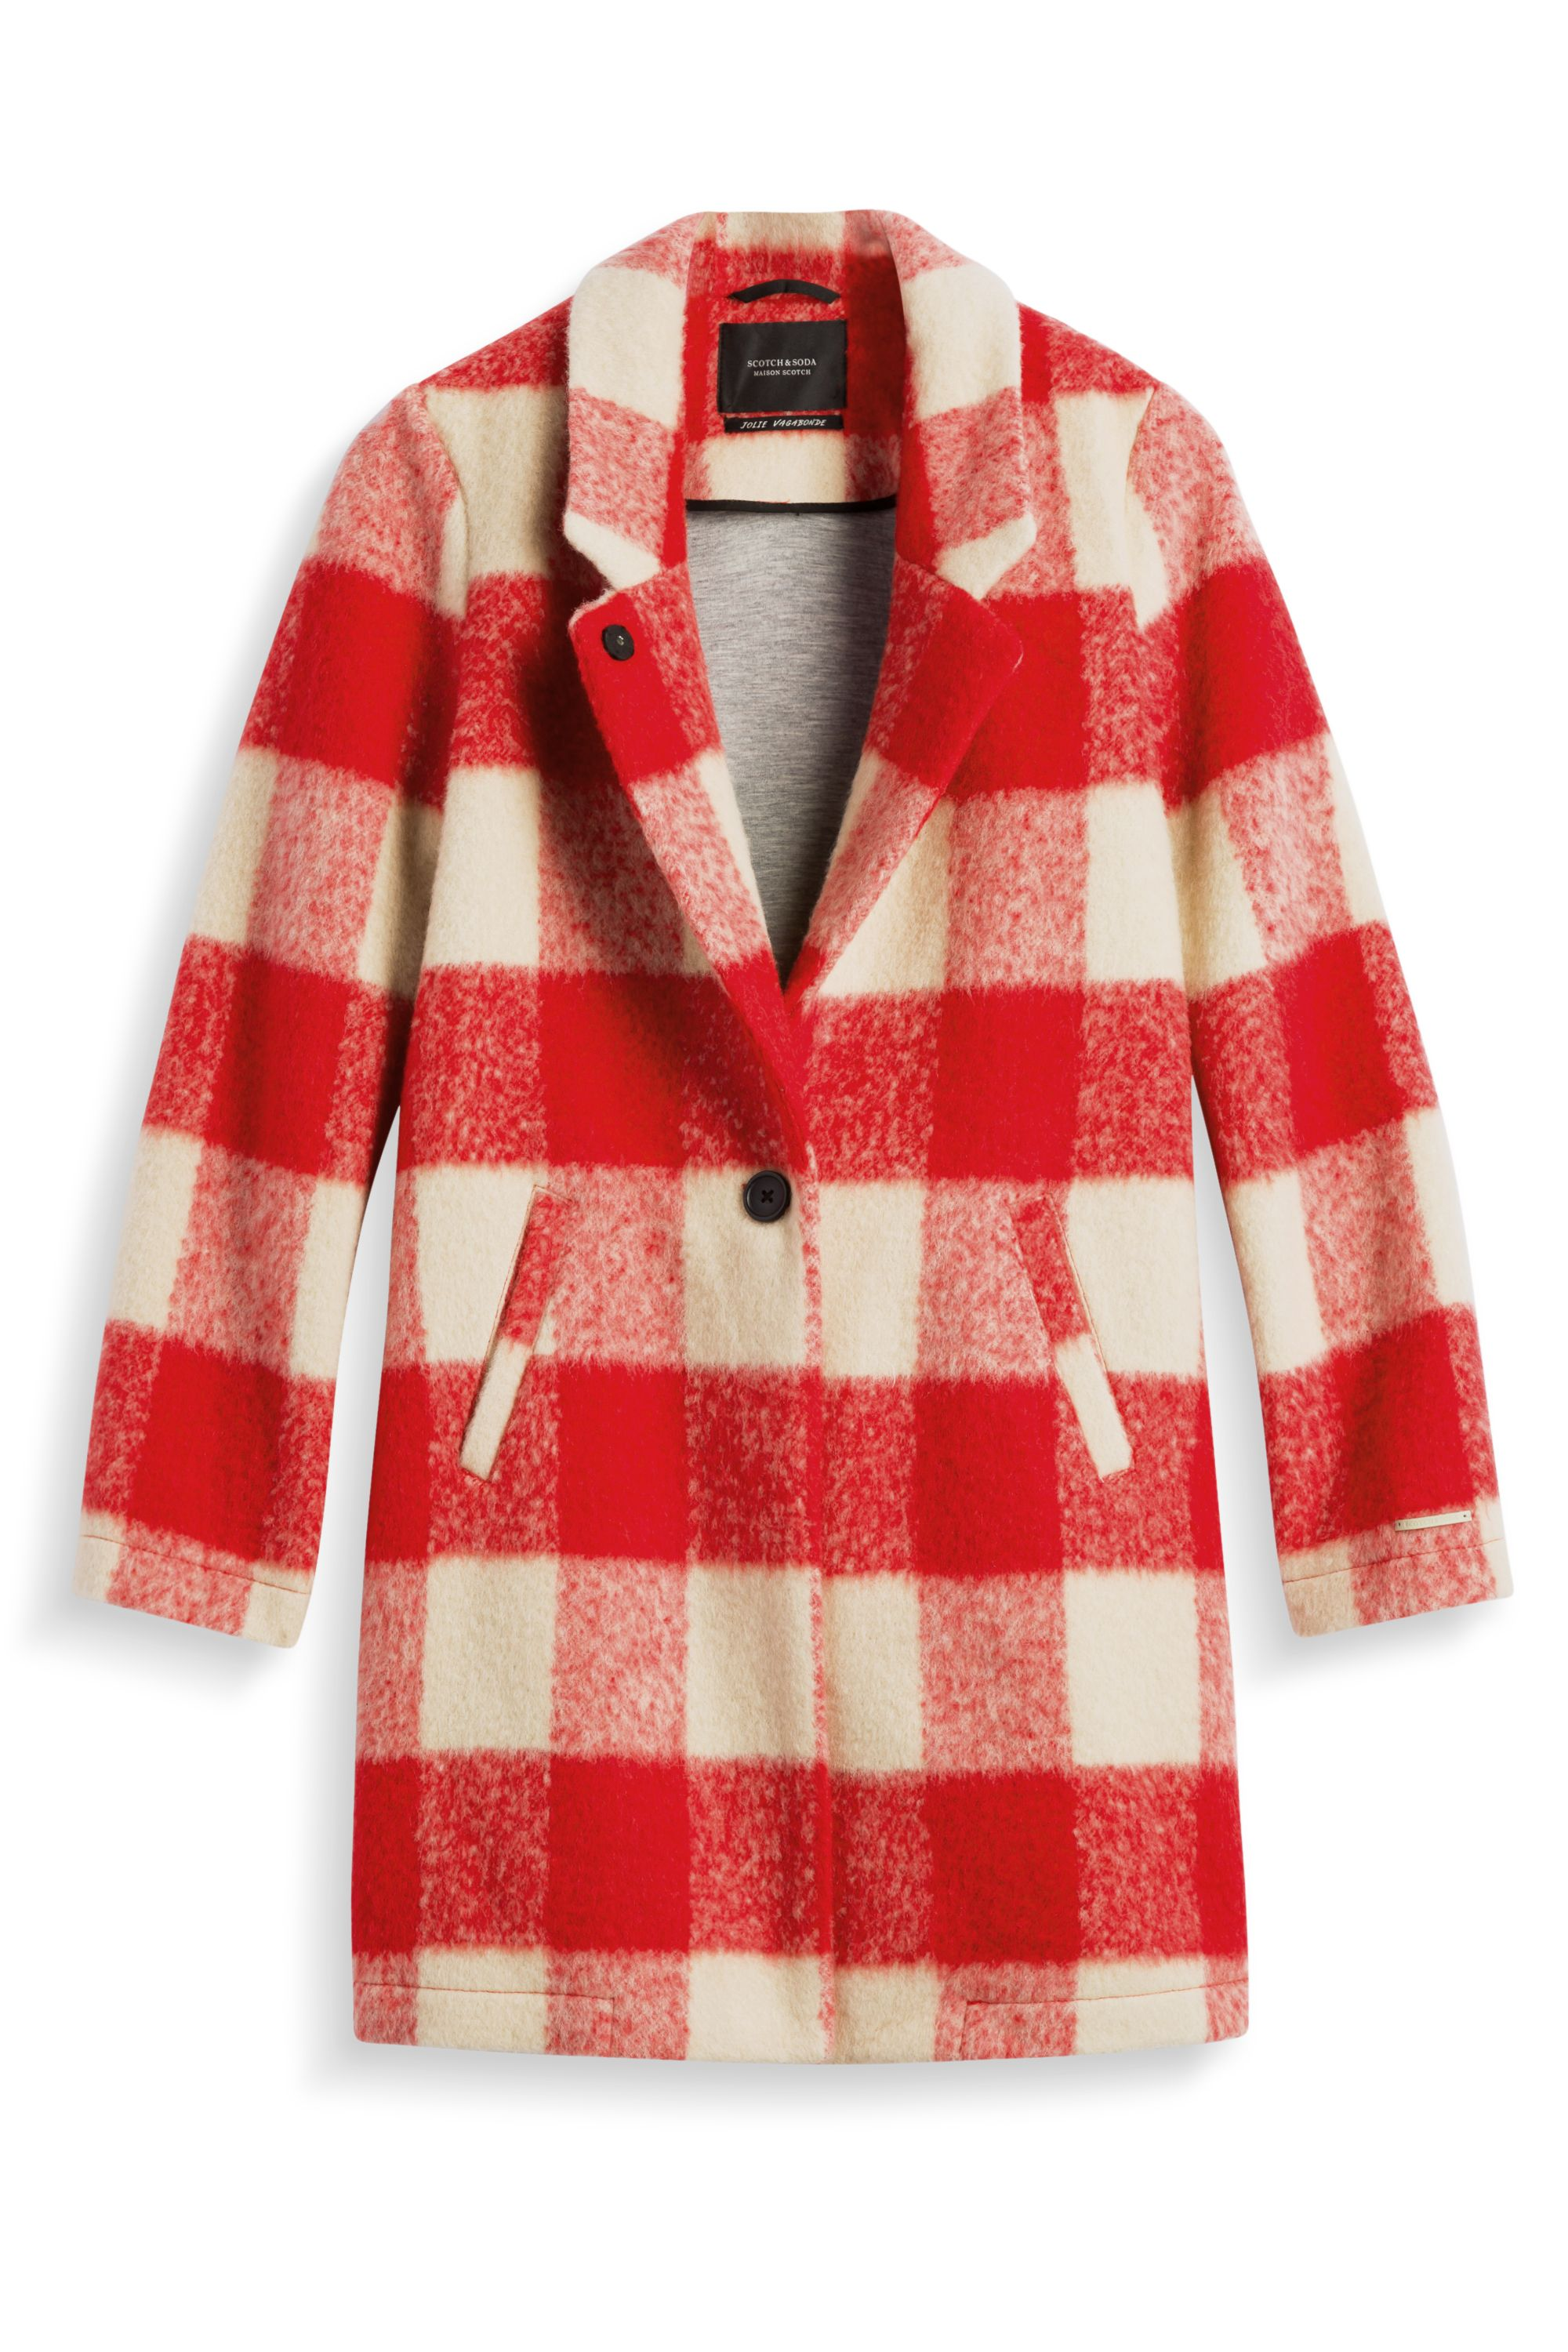 @scotchofficial: New Brand To Love At Stitch Fix